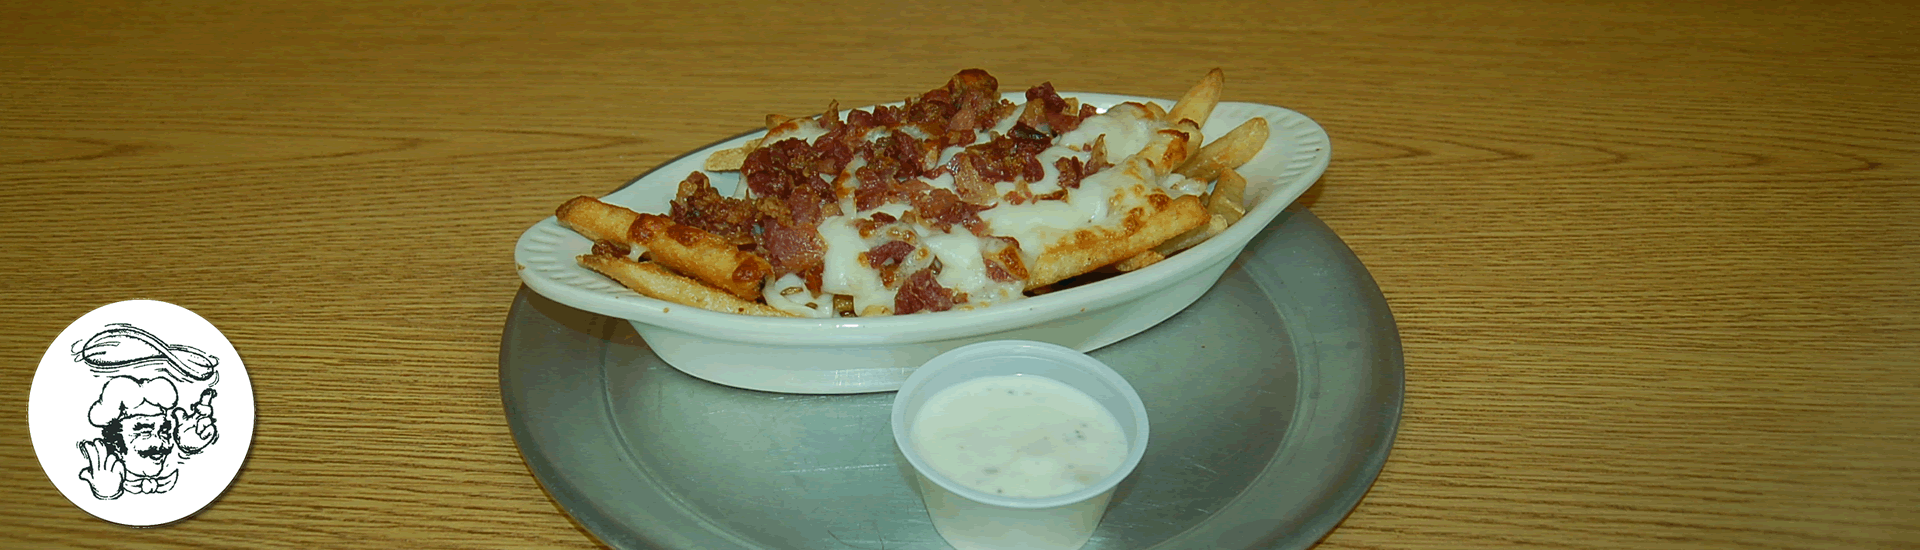 Bella Pizza Clifton Forge VA fries cheese bacon